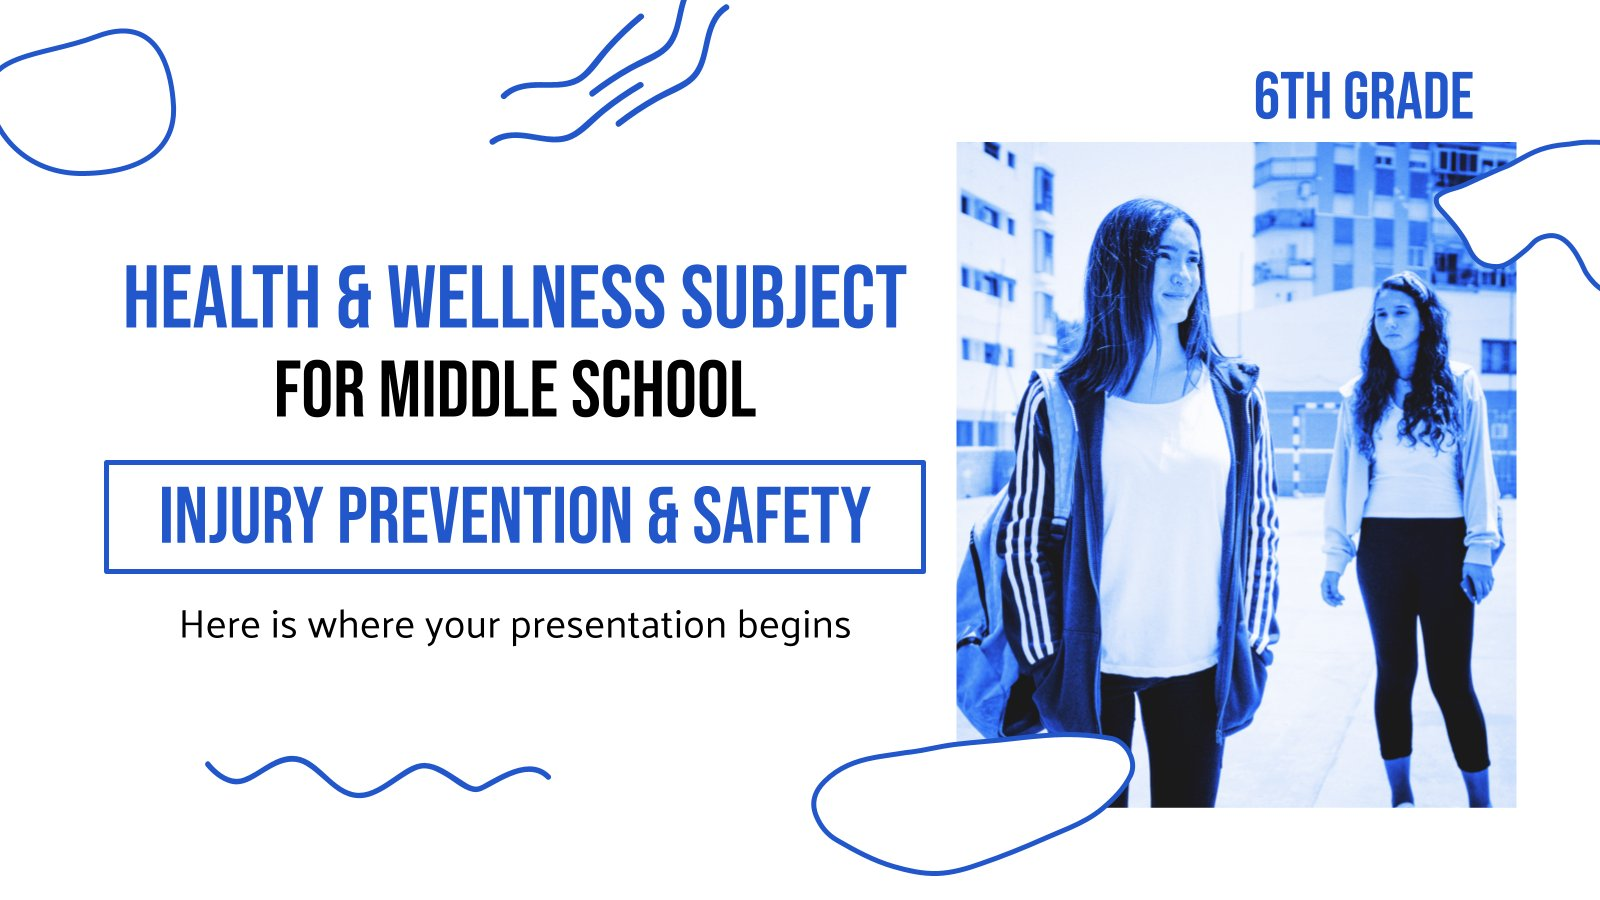 Health & Wellness Subject for Middle School presentation template